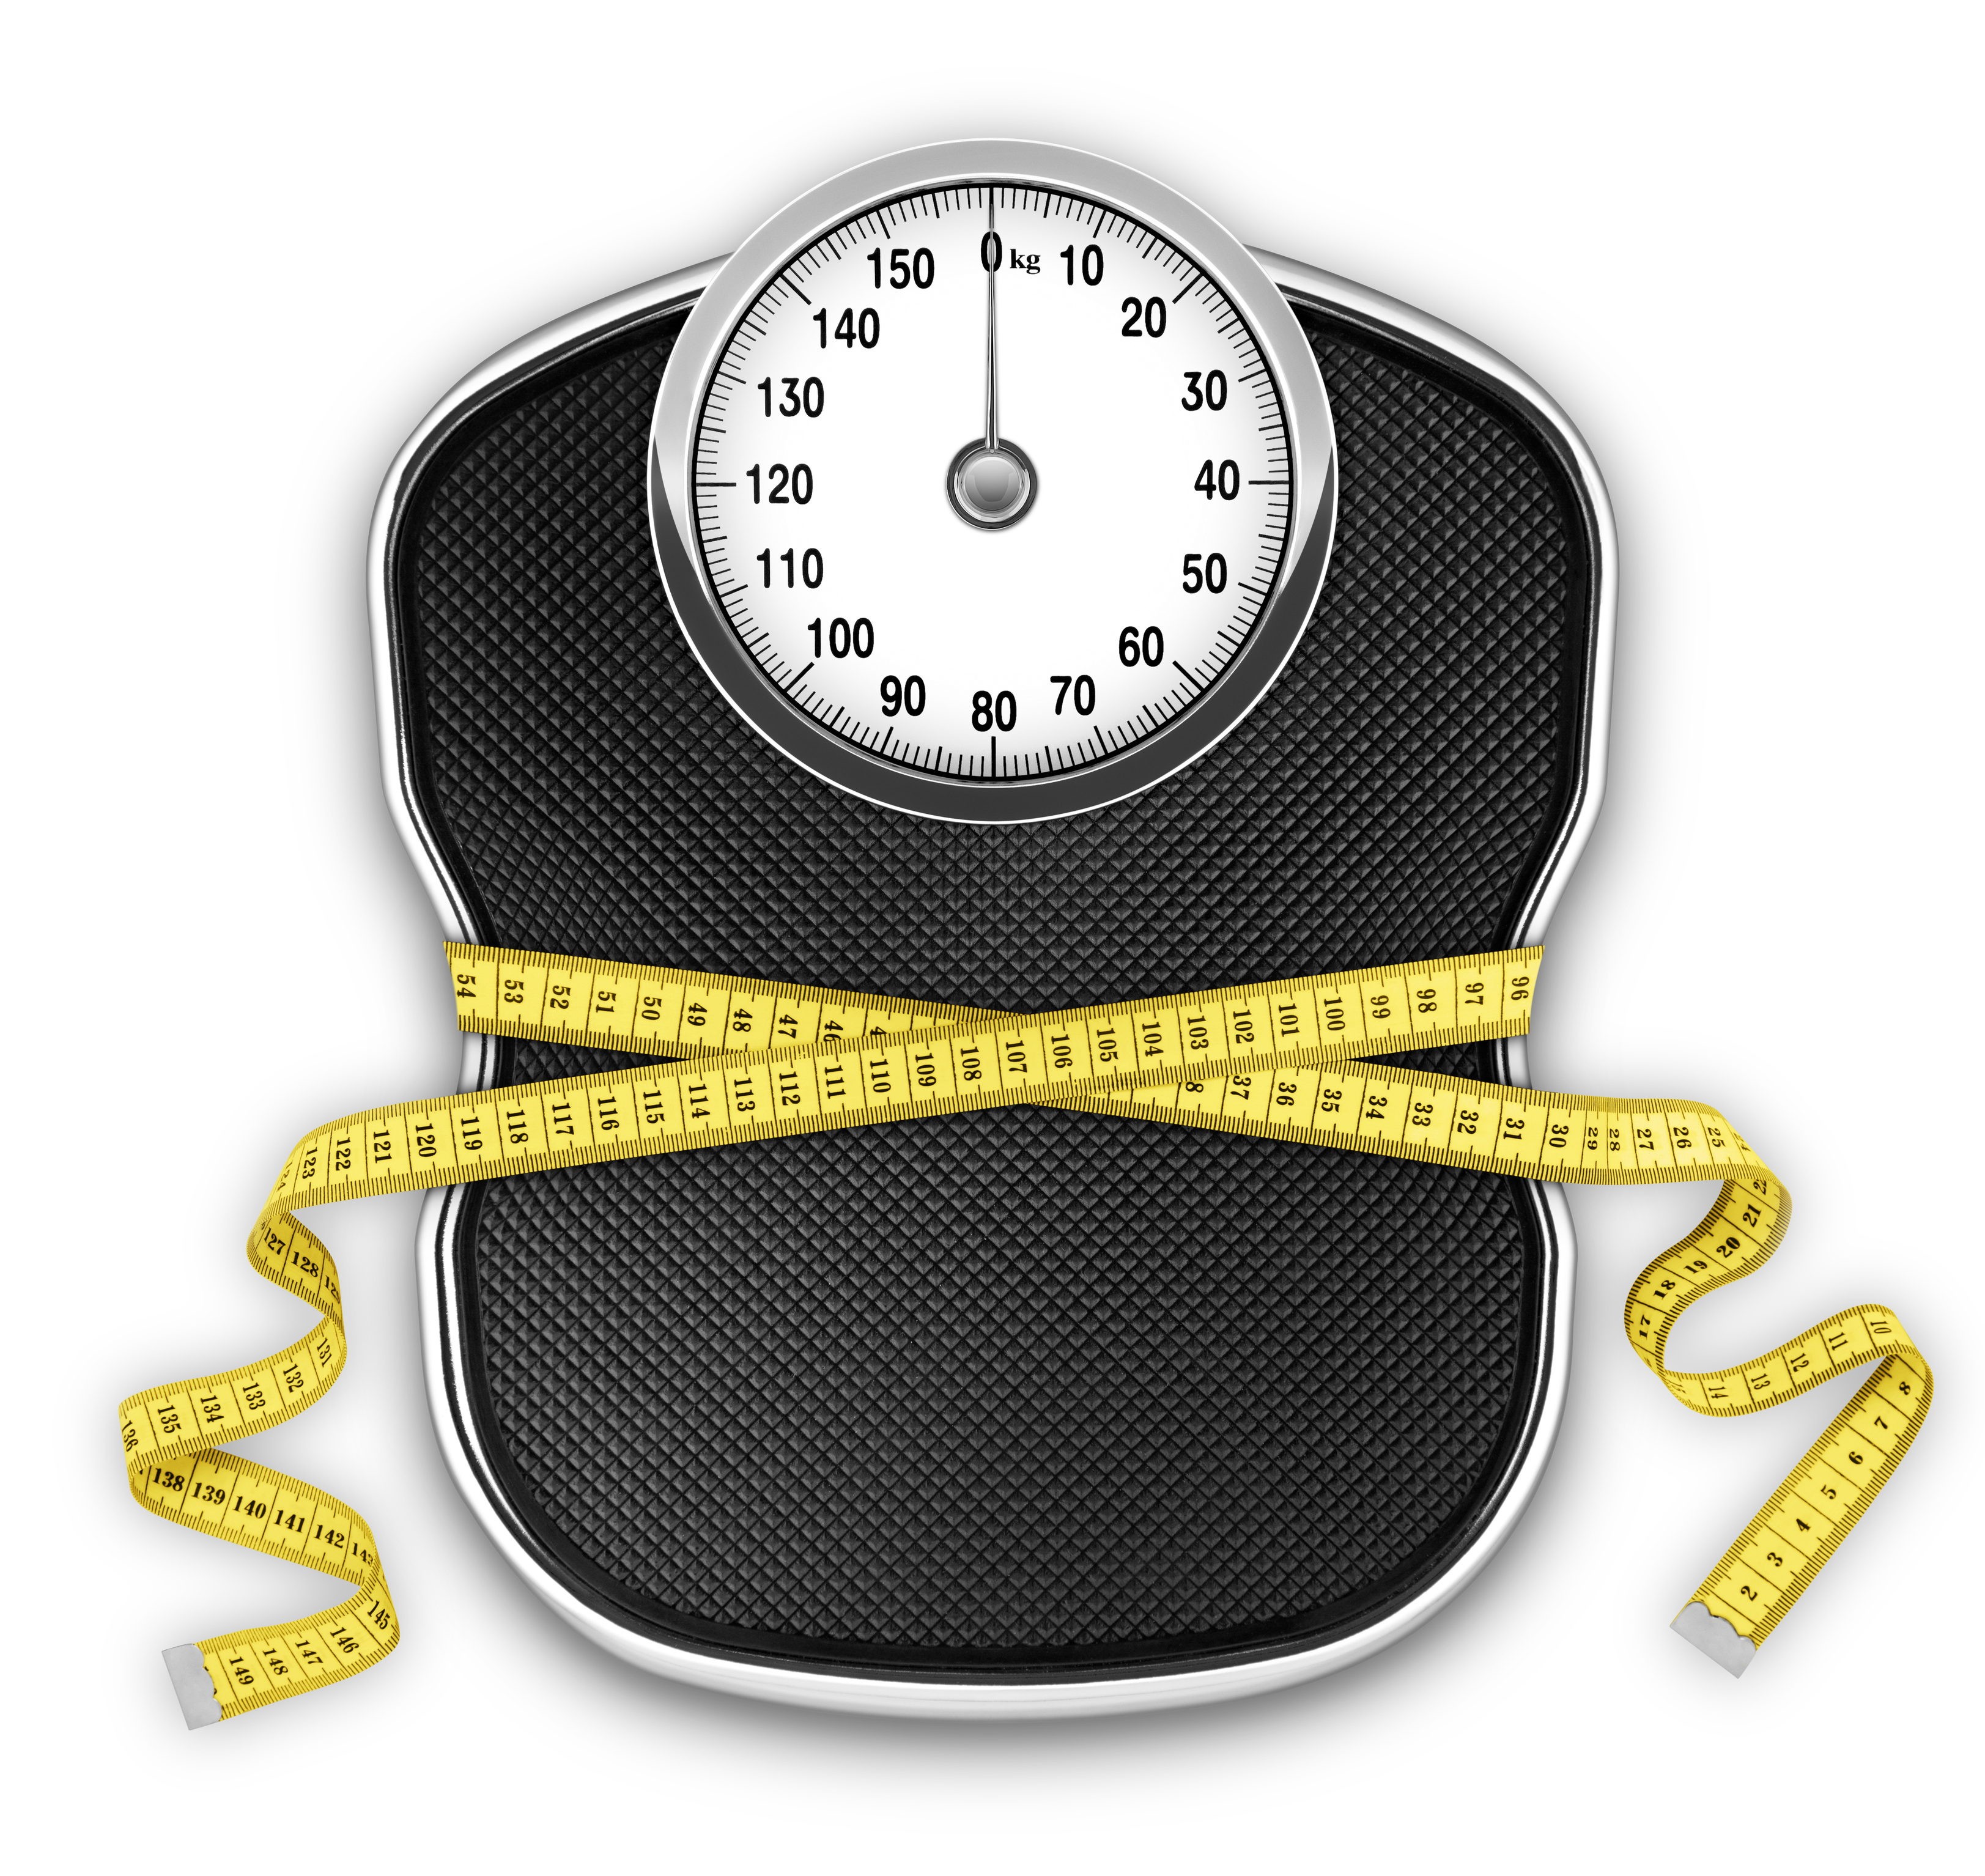 Slimming Scale (kg) (with Clipping Path)